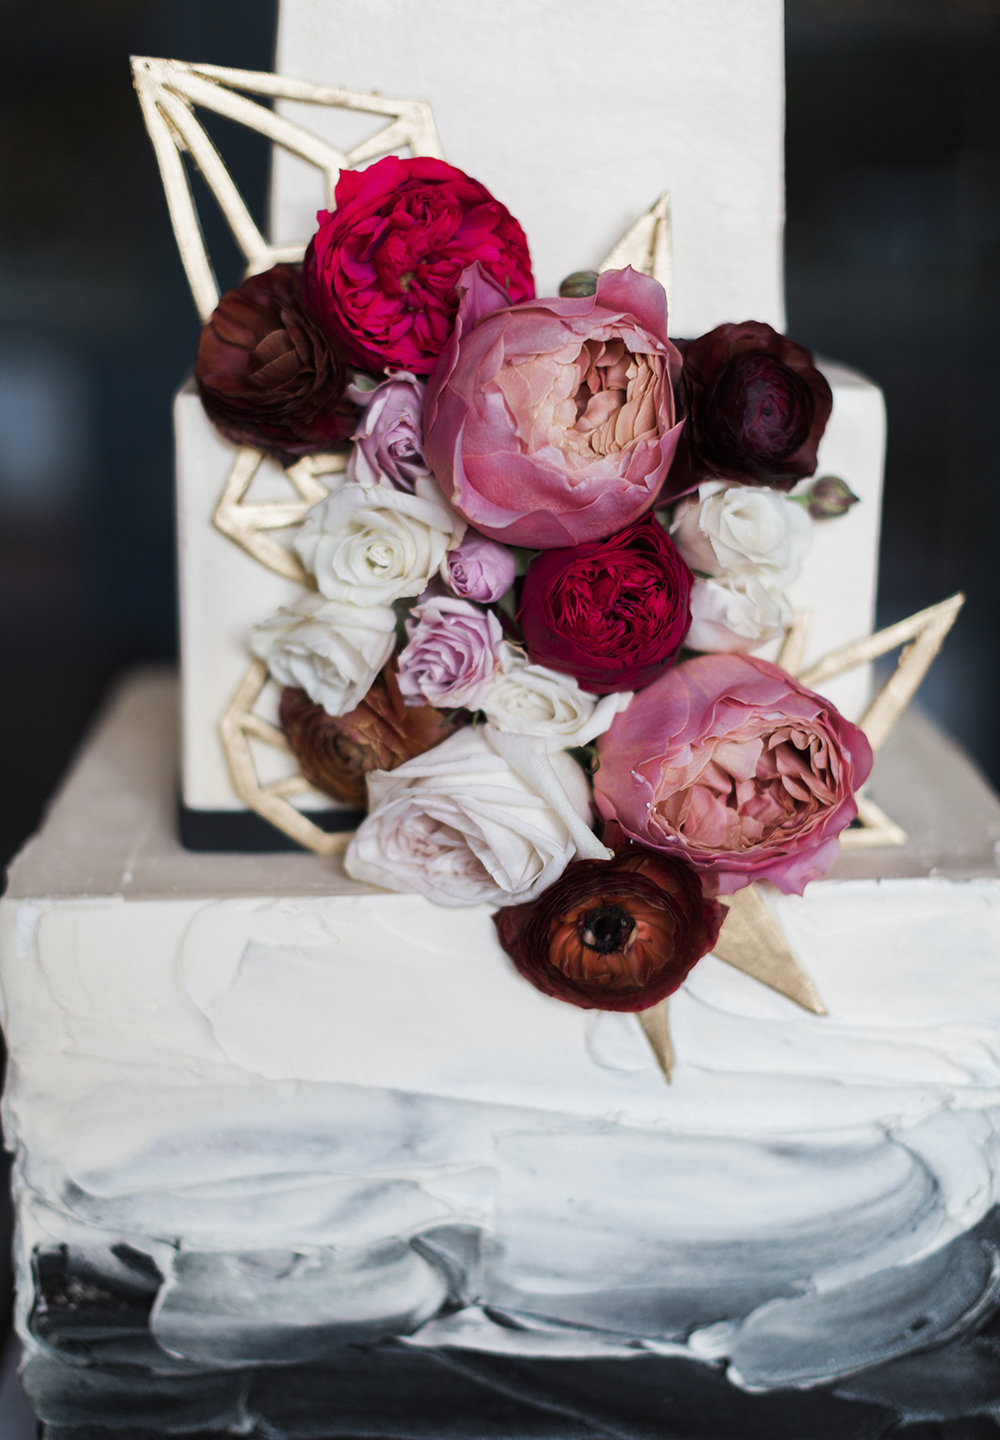 Ombre Cake with fresh flowers, and Mid Century Modern Elements.